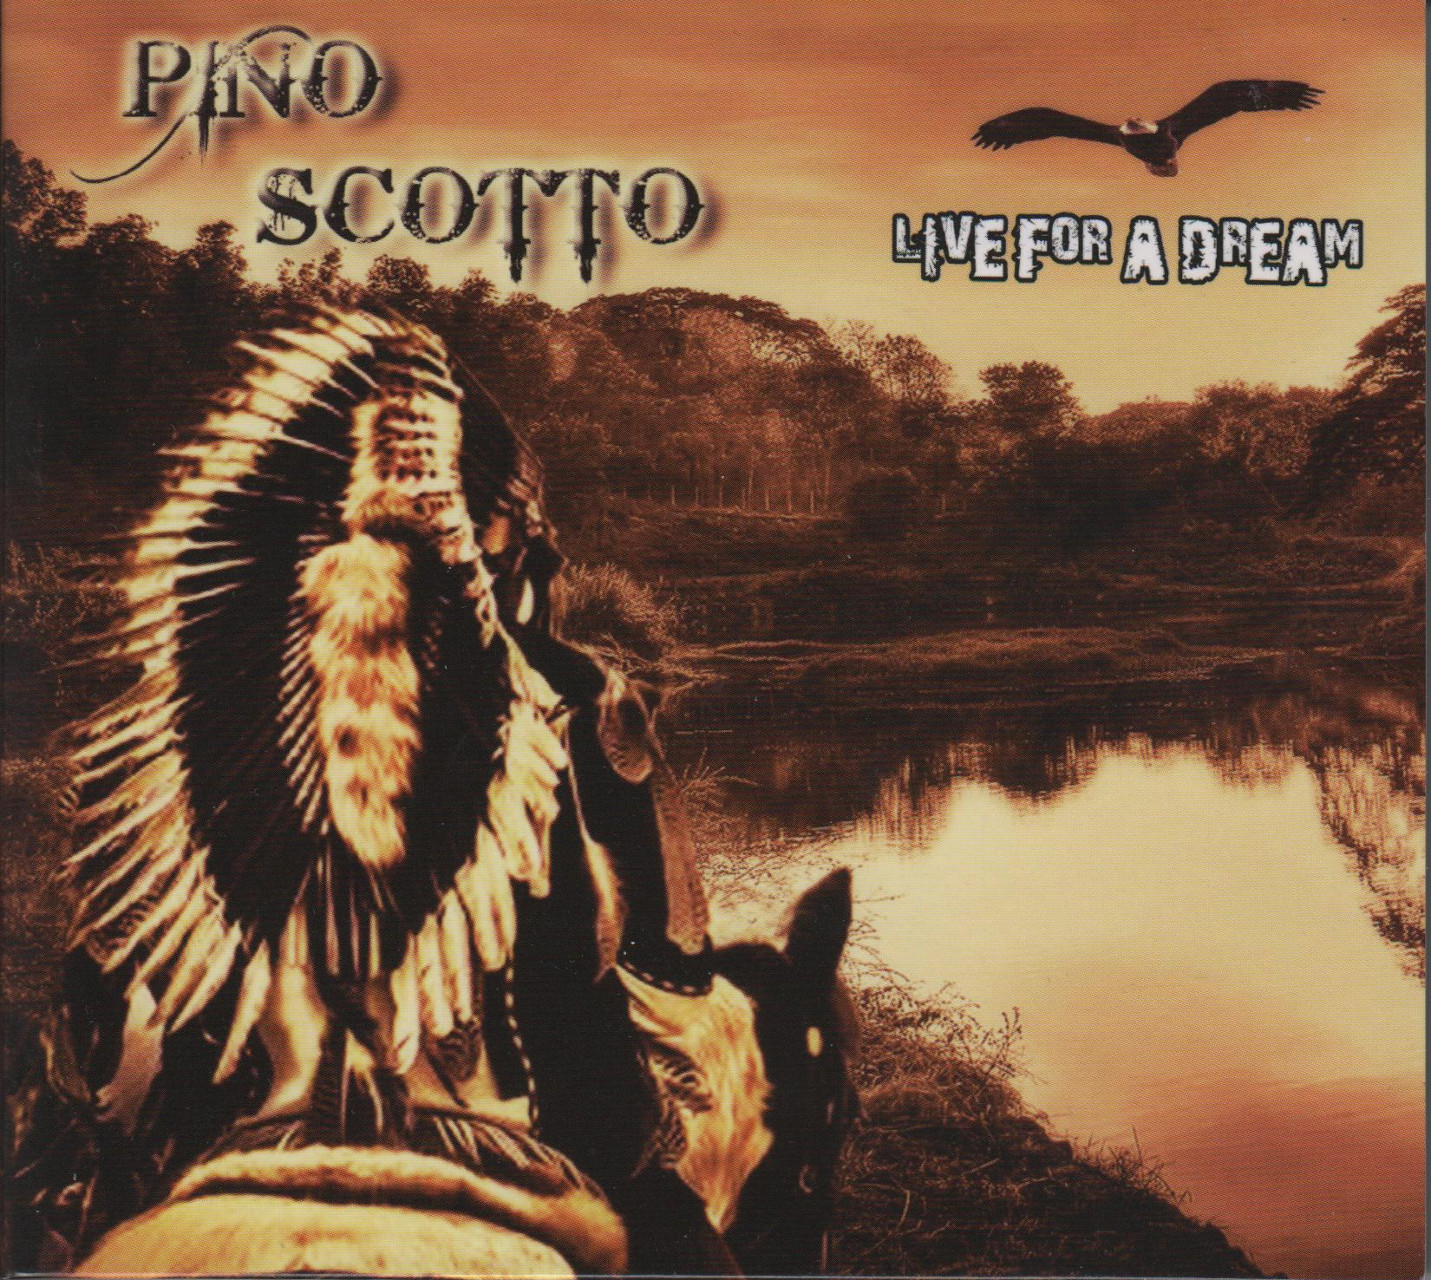 Pino Scotto - Live for a dream